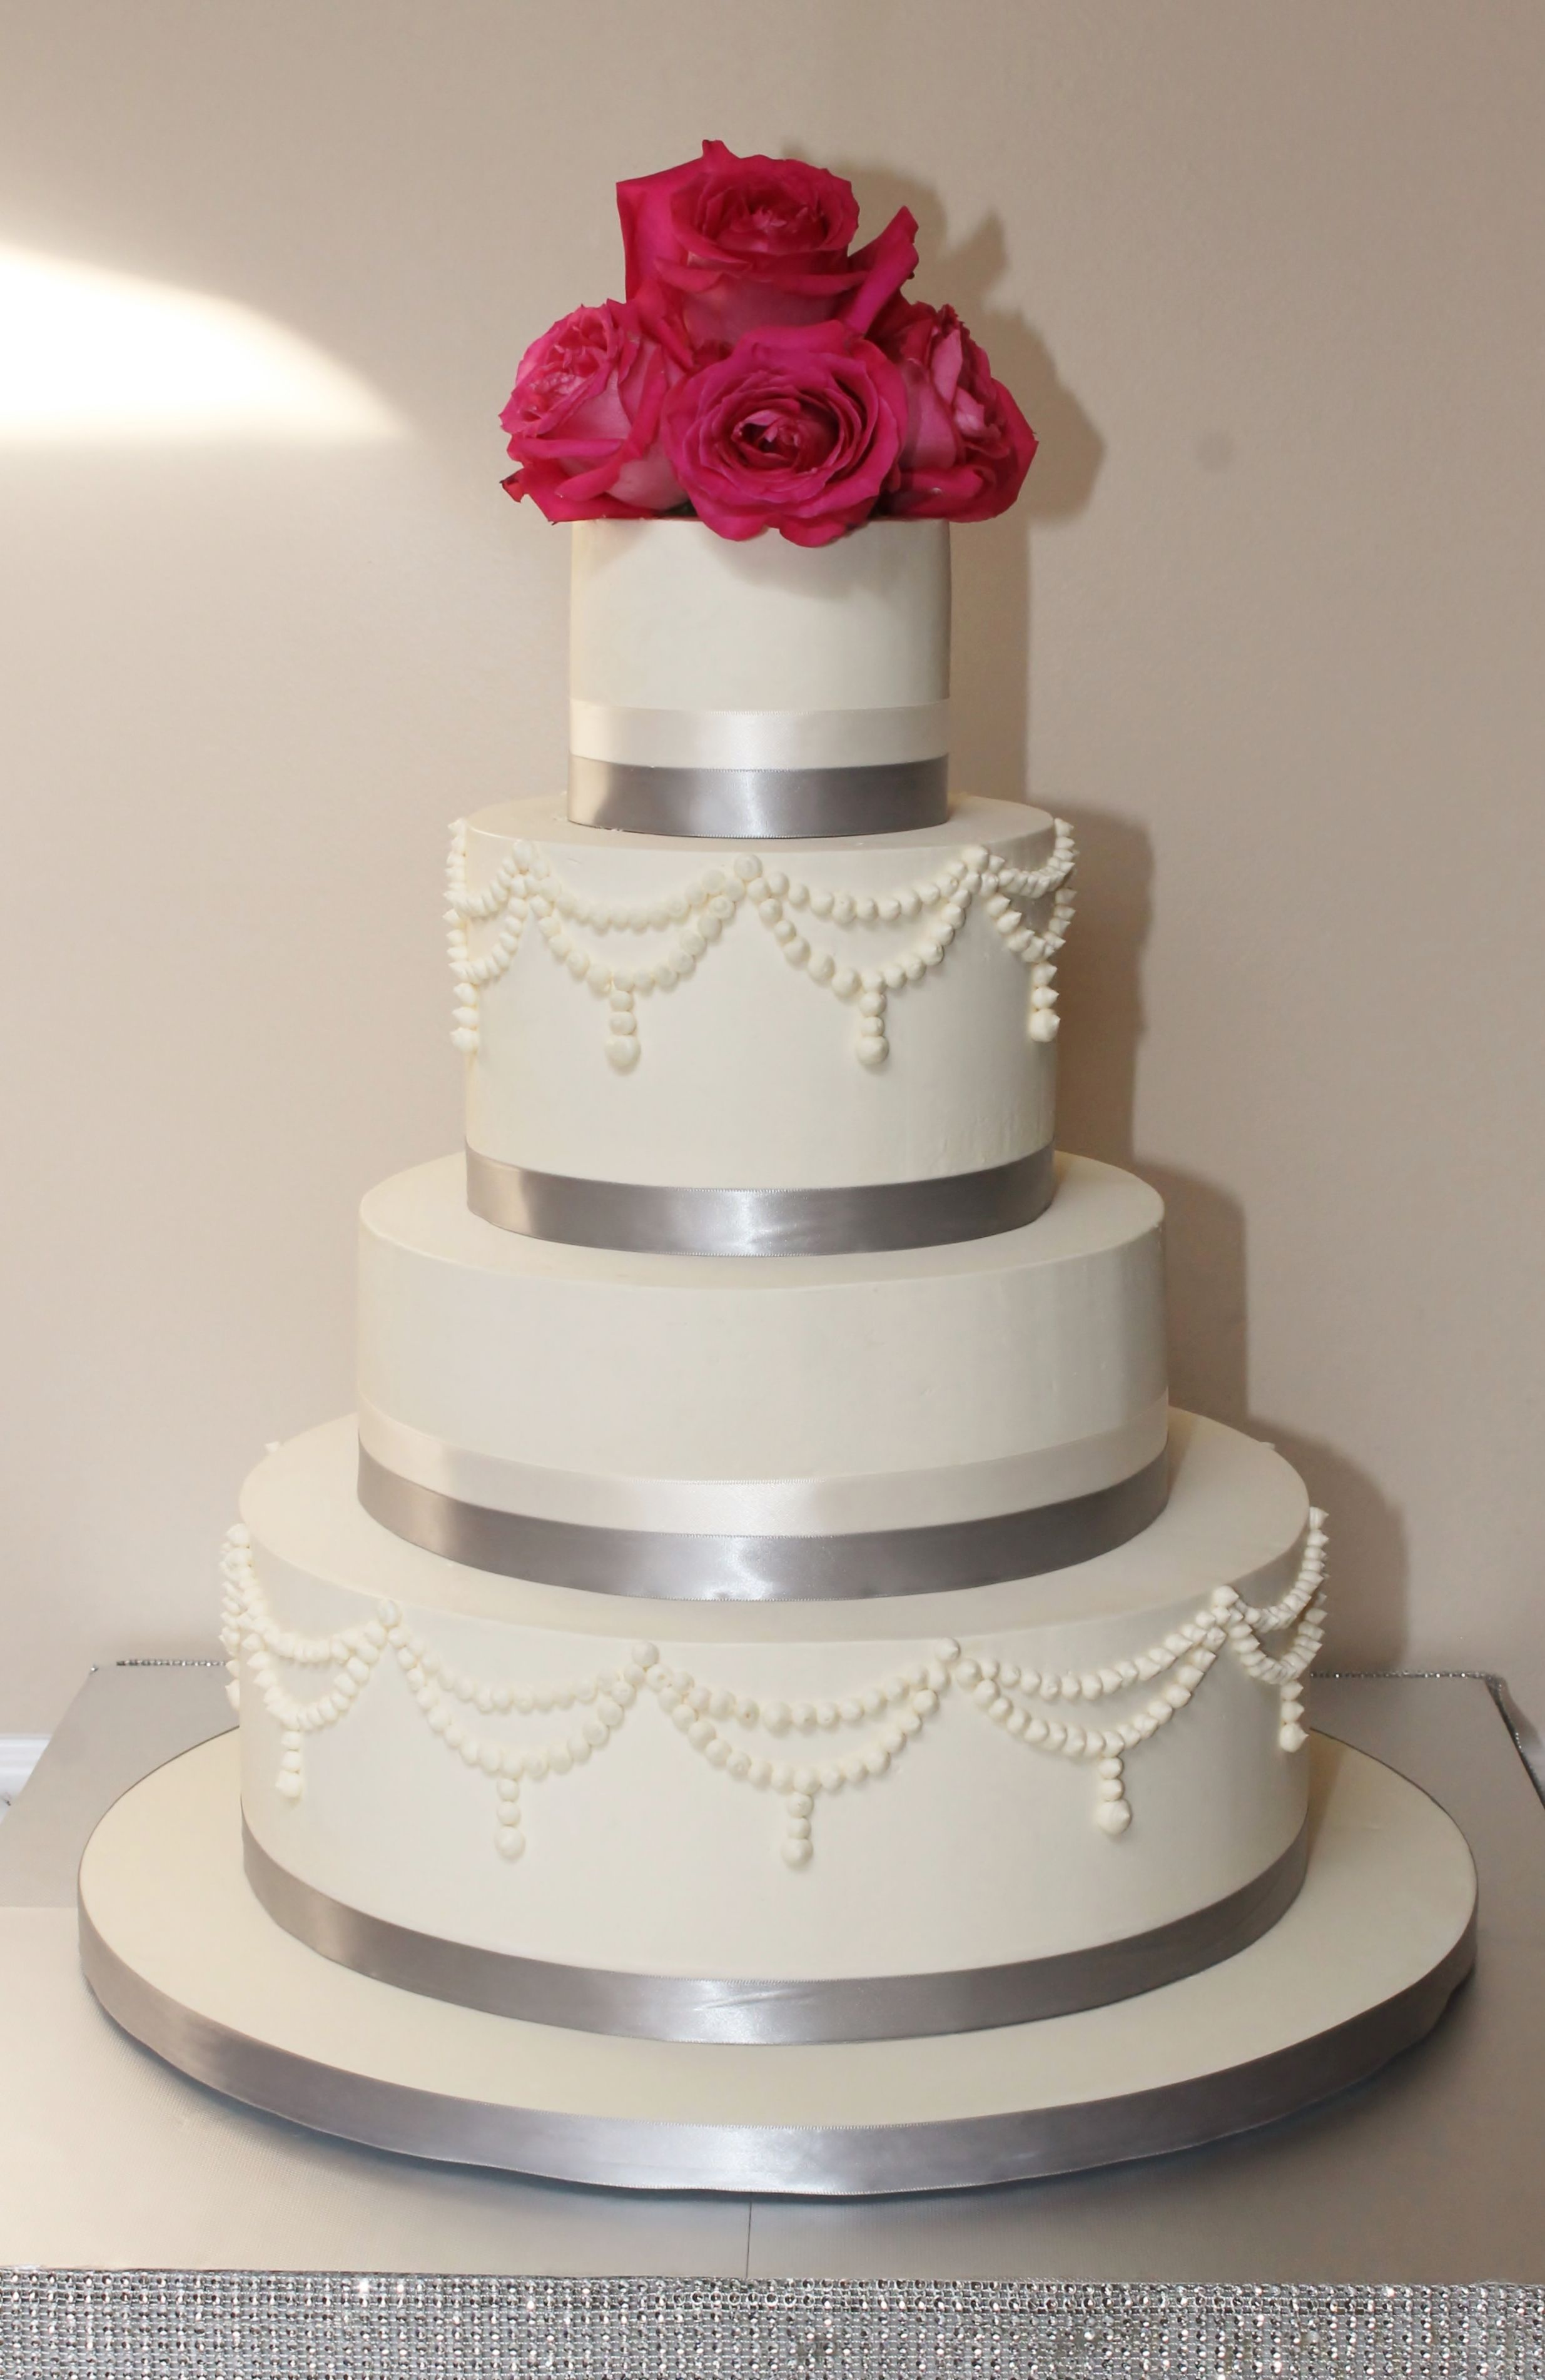 Four Tier Buttercream Finished Wedding Cake With Piped Pearls Swags